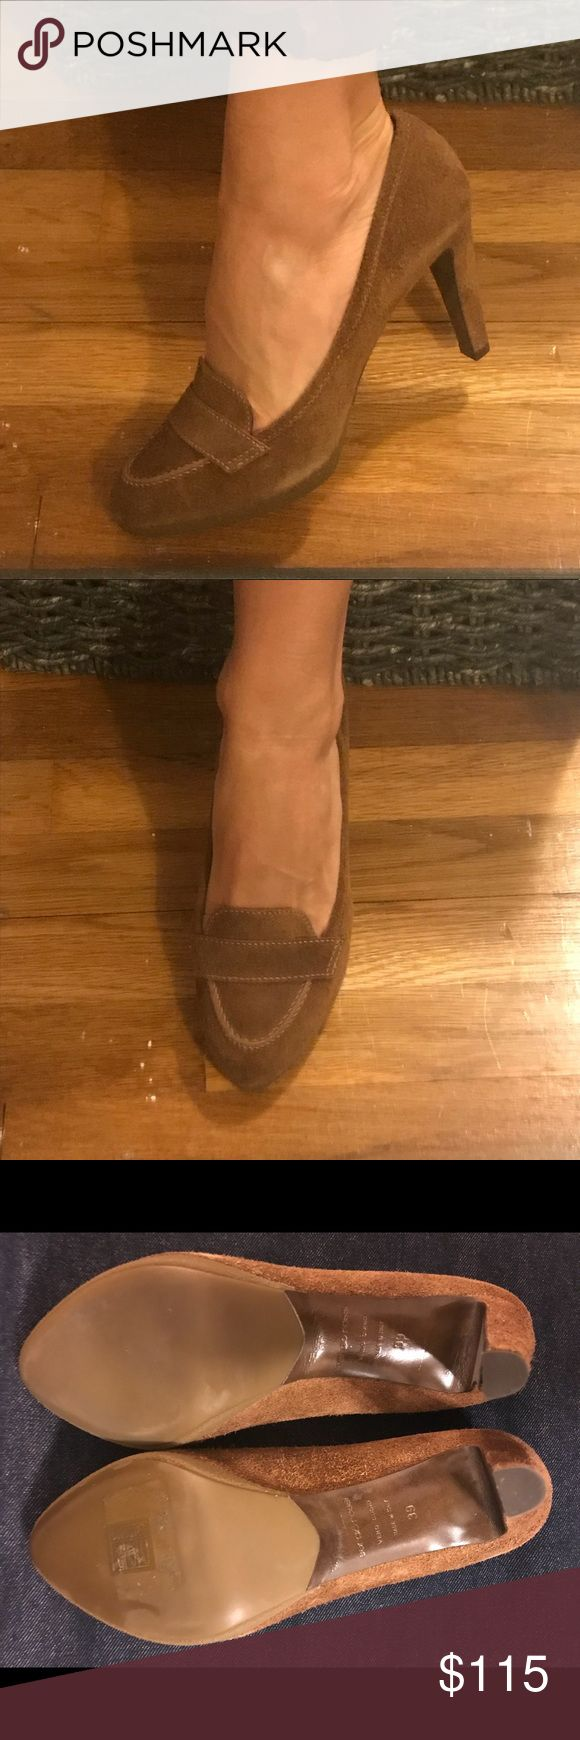 Sergio Rossi Brown Suede Loafer Style Heel.Size 39 Excellent condition. Practically new if you count my trying them on and realizing over and over that they are just a bit too big.  Super soft and comfy brown suede. They really go with so much to complete a classic look. Sergio Rossi Shoes Heels